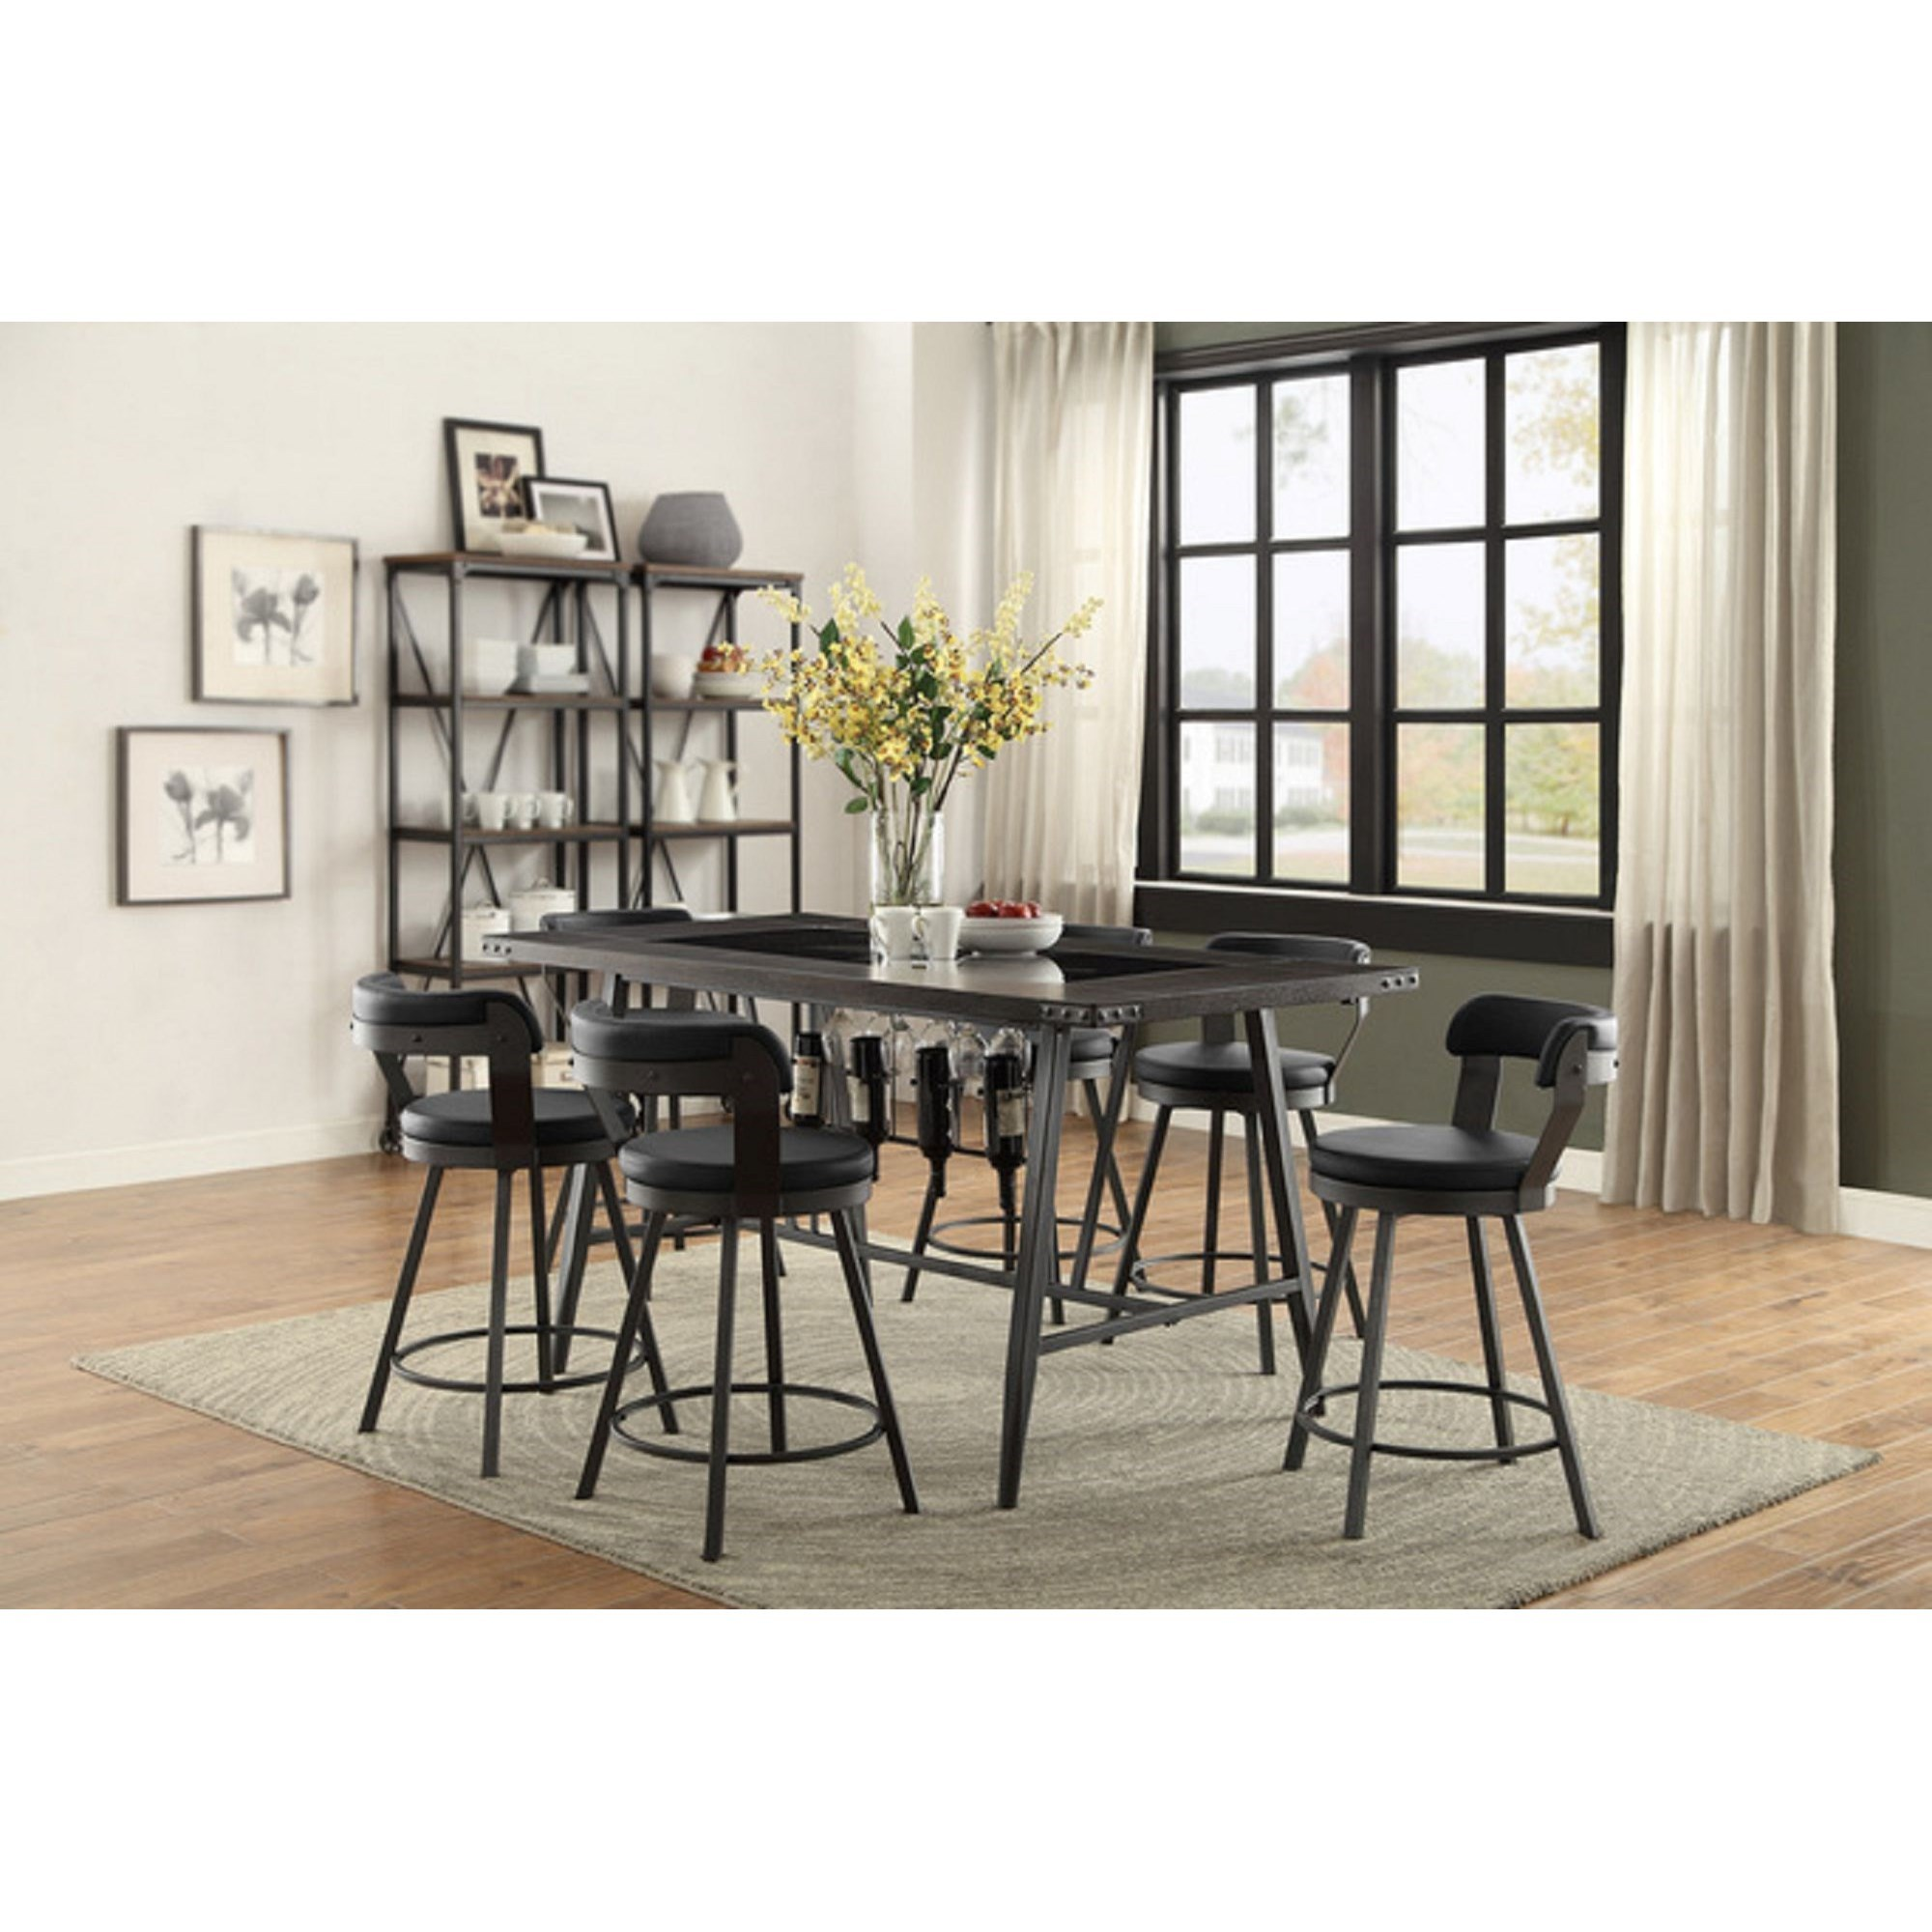 5566 Counter Height Table and Chair Set by Homelegance at Value City Furniture